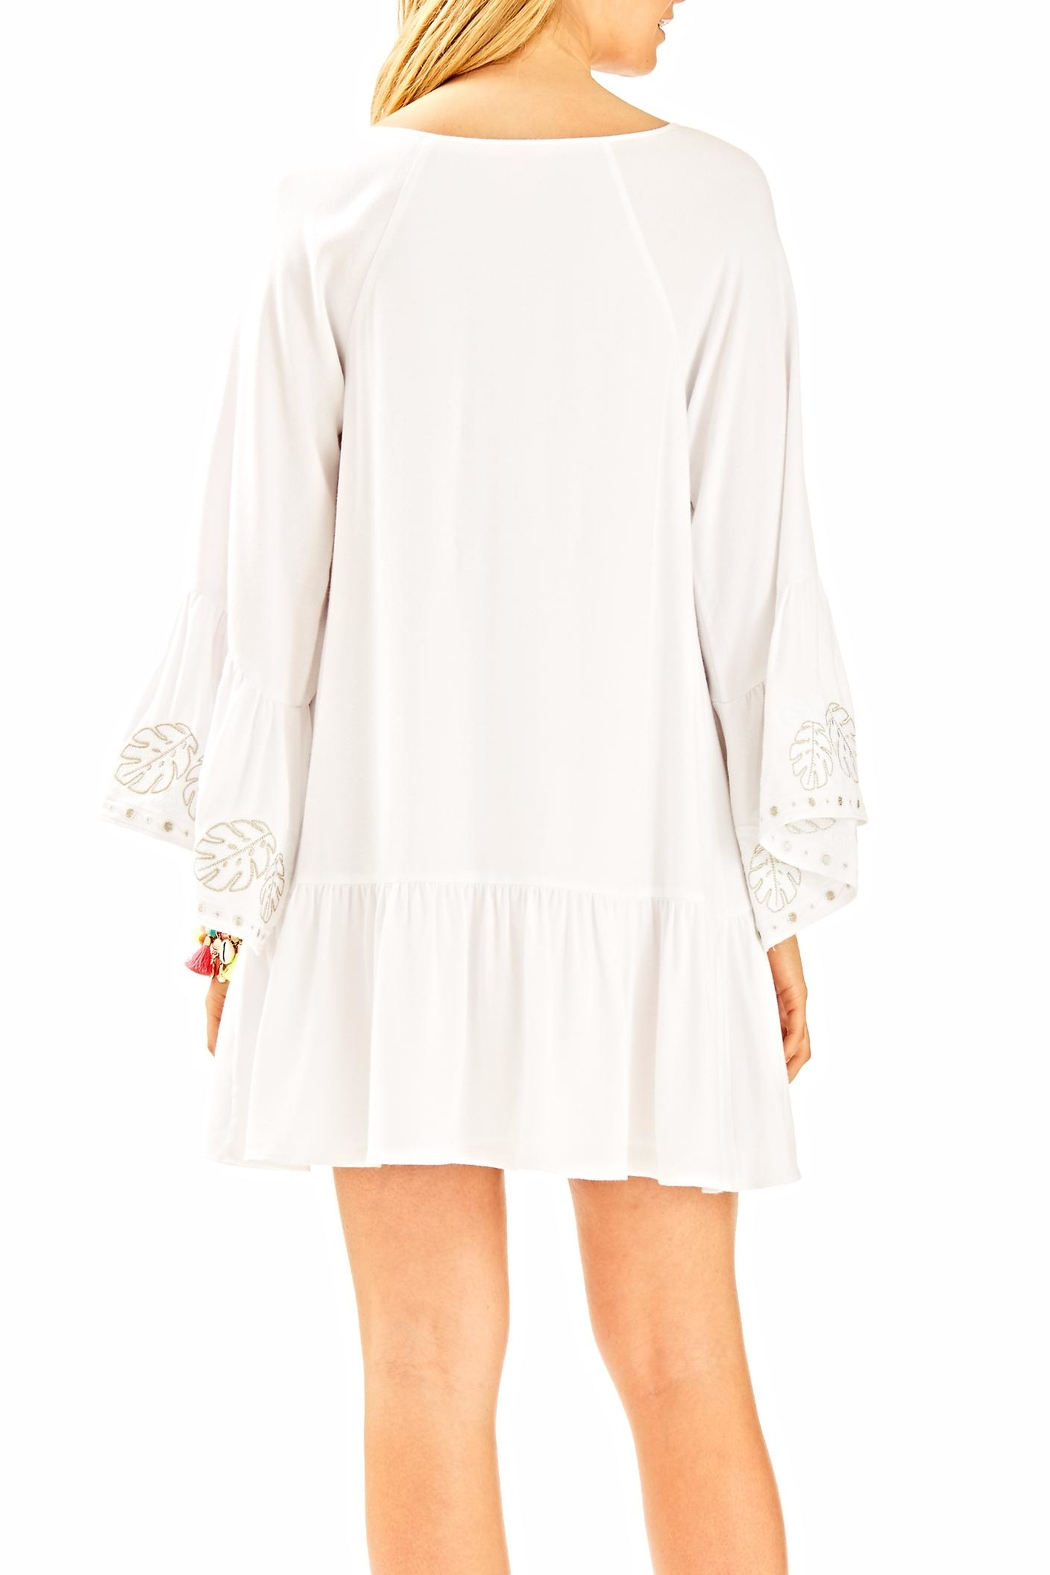 c9173eb4079 Lilly Pulitzer Amisa Tunic Dress from Sandestin Golf and Beach ...